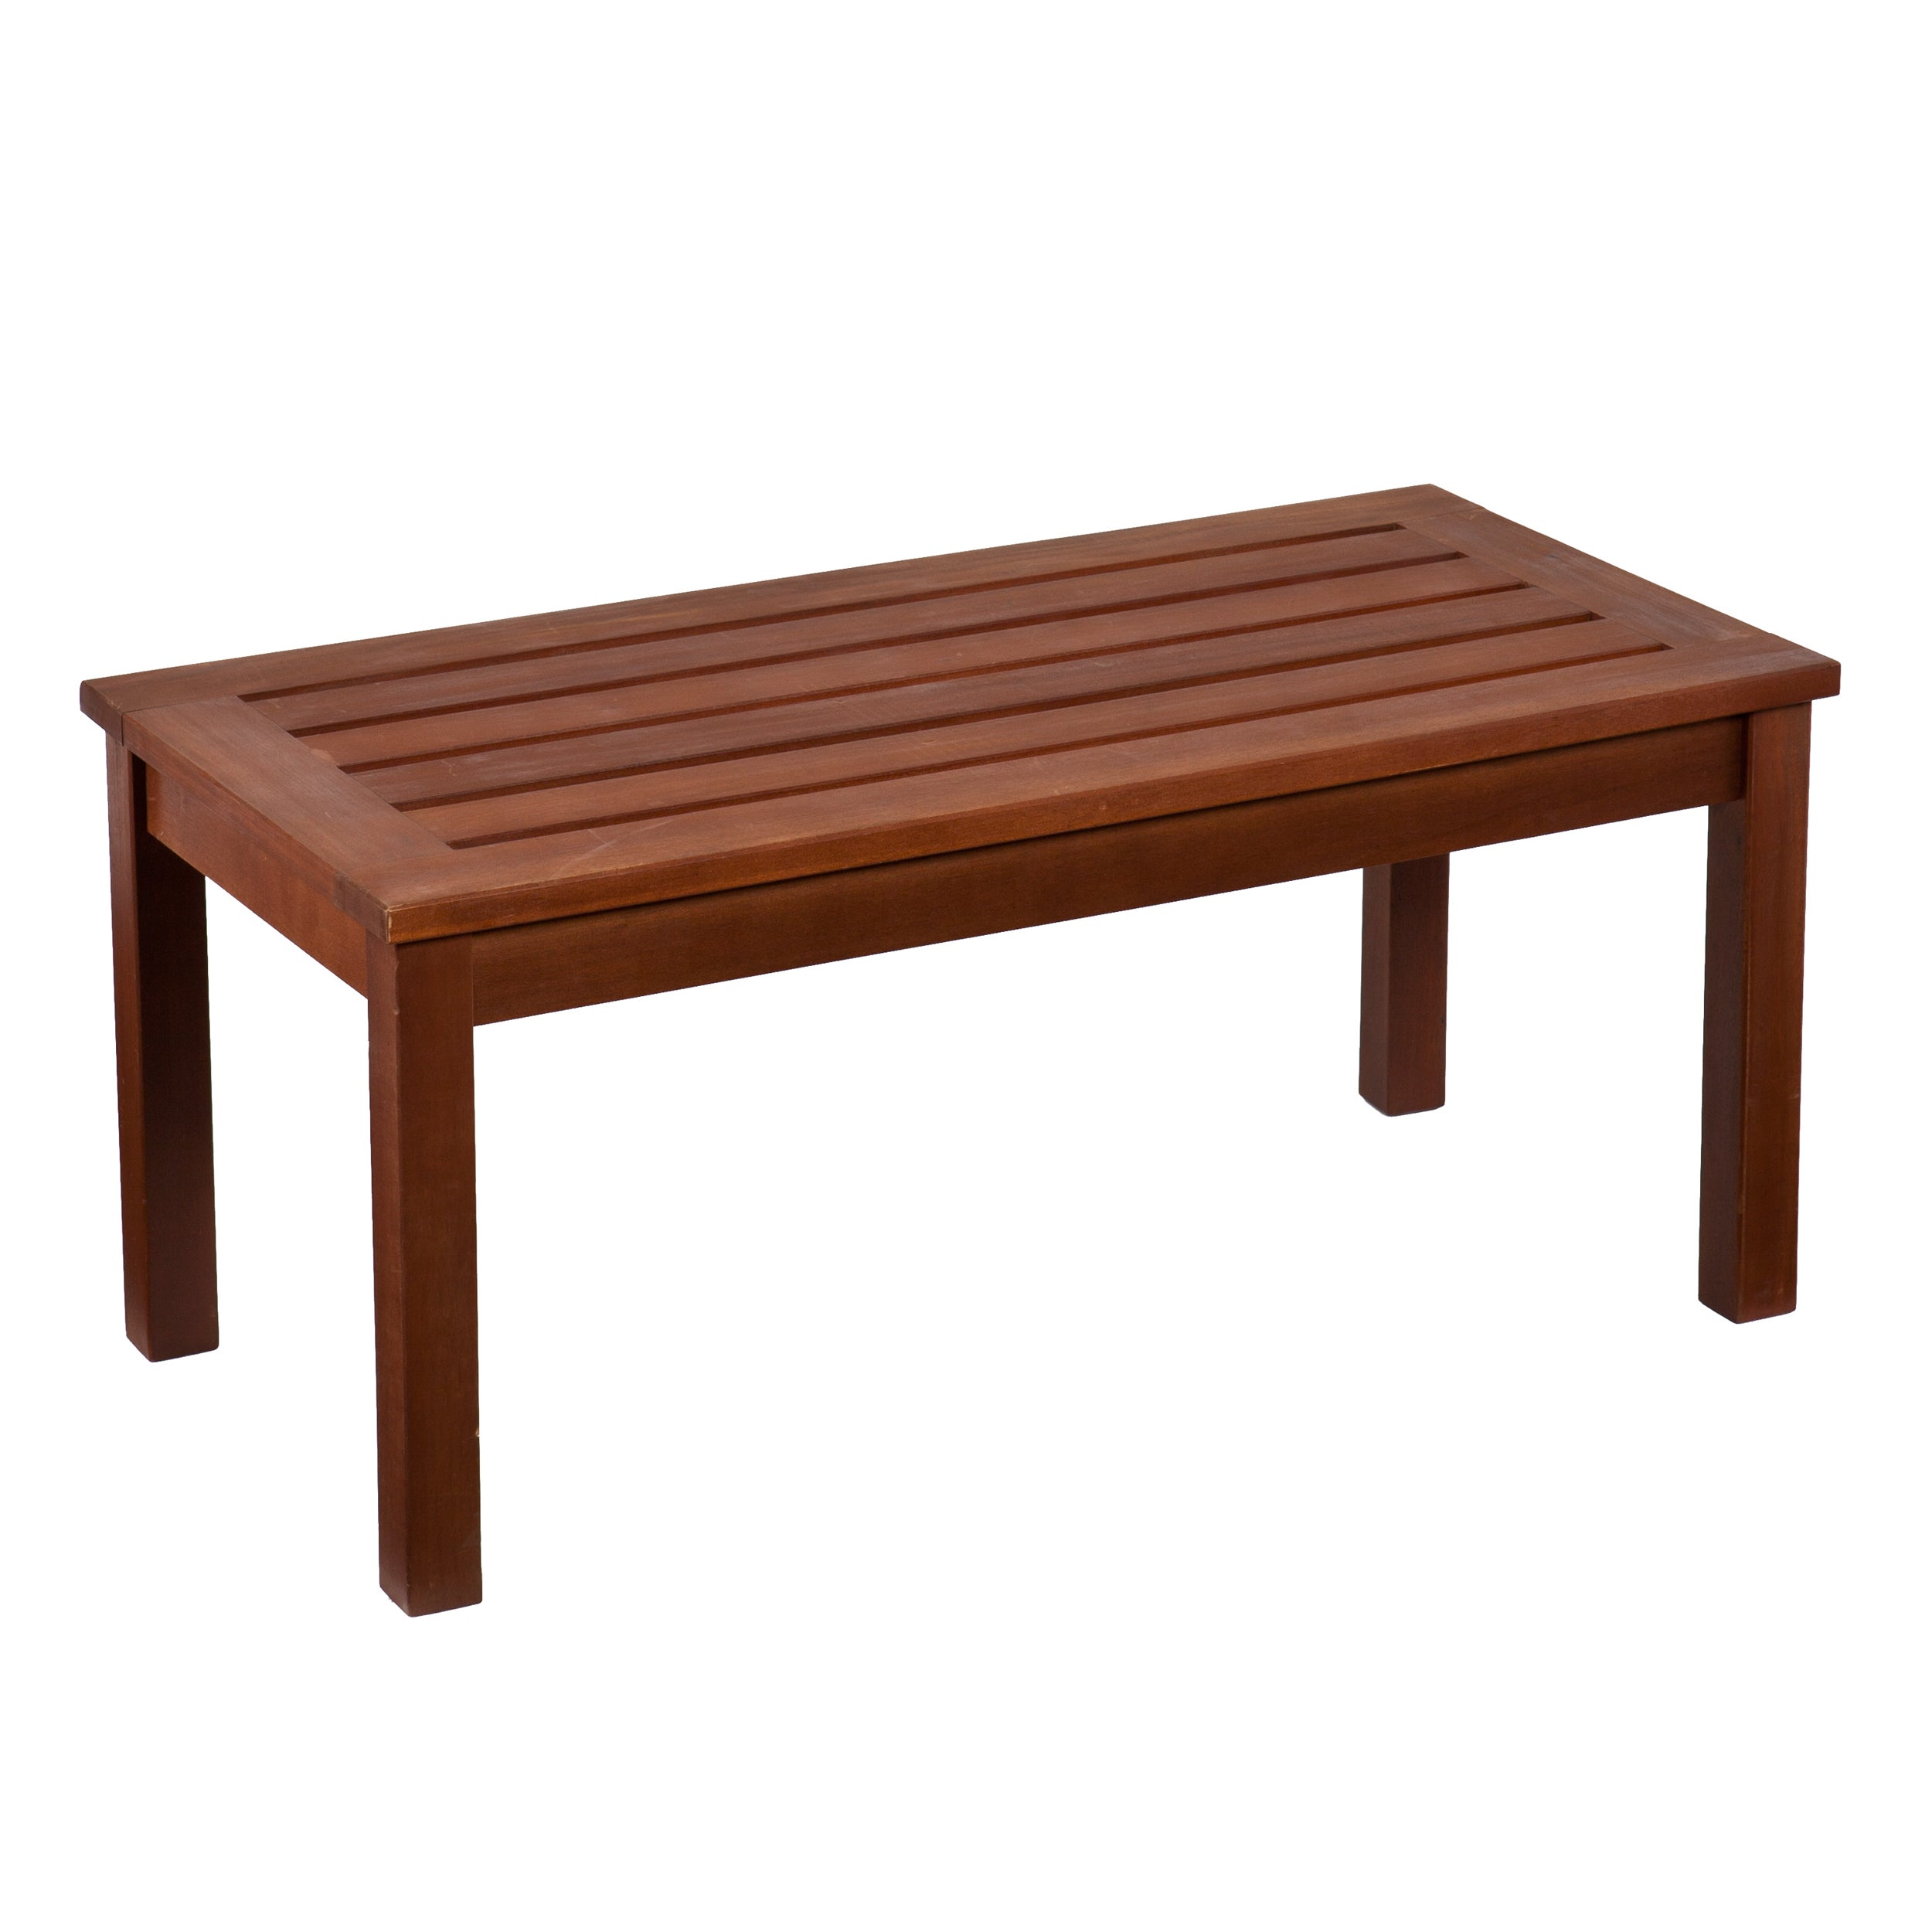 Shop harper blvd krueger hardwood outdoor cocktail coffee table free shipping today overstock com 8029245